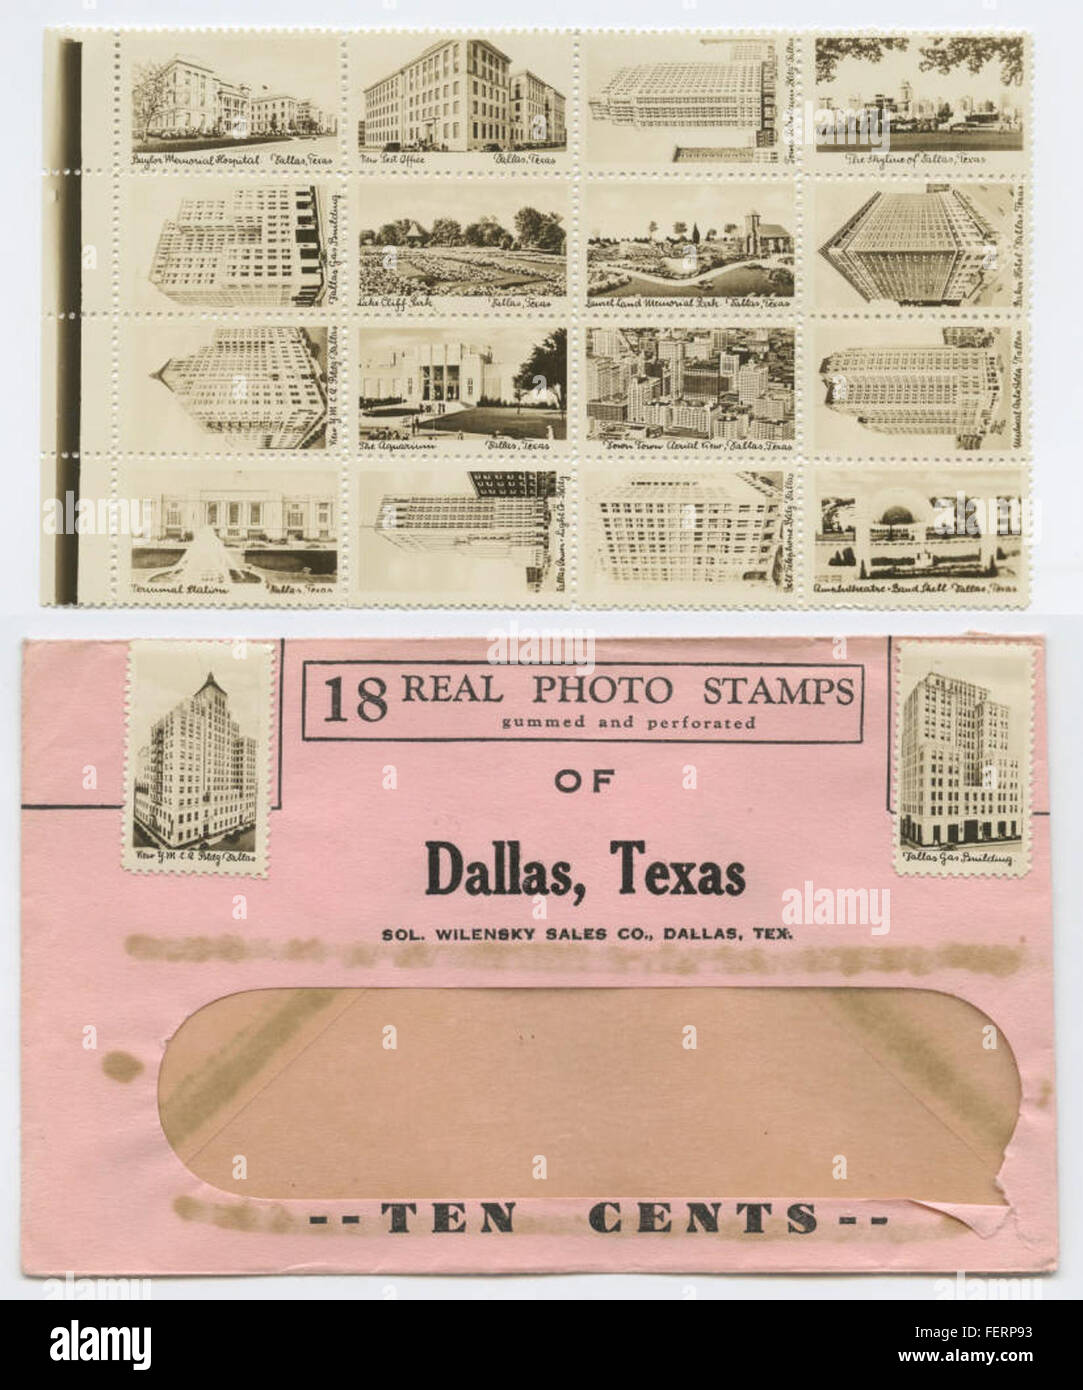 18 Real Photo Stamps, gummed and perforated, Dallas, Texas - Stock Image